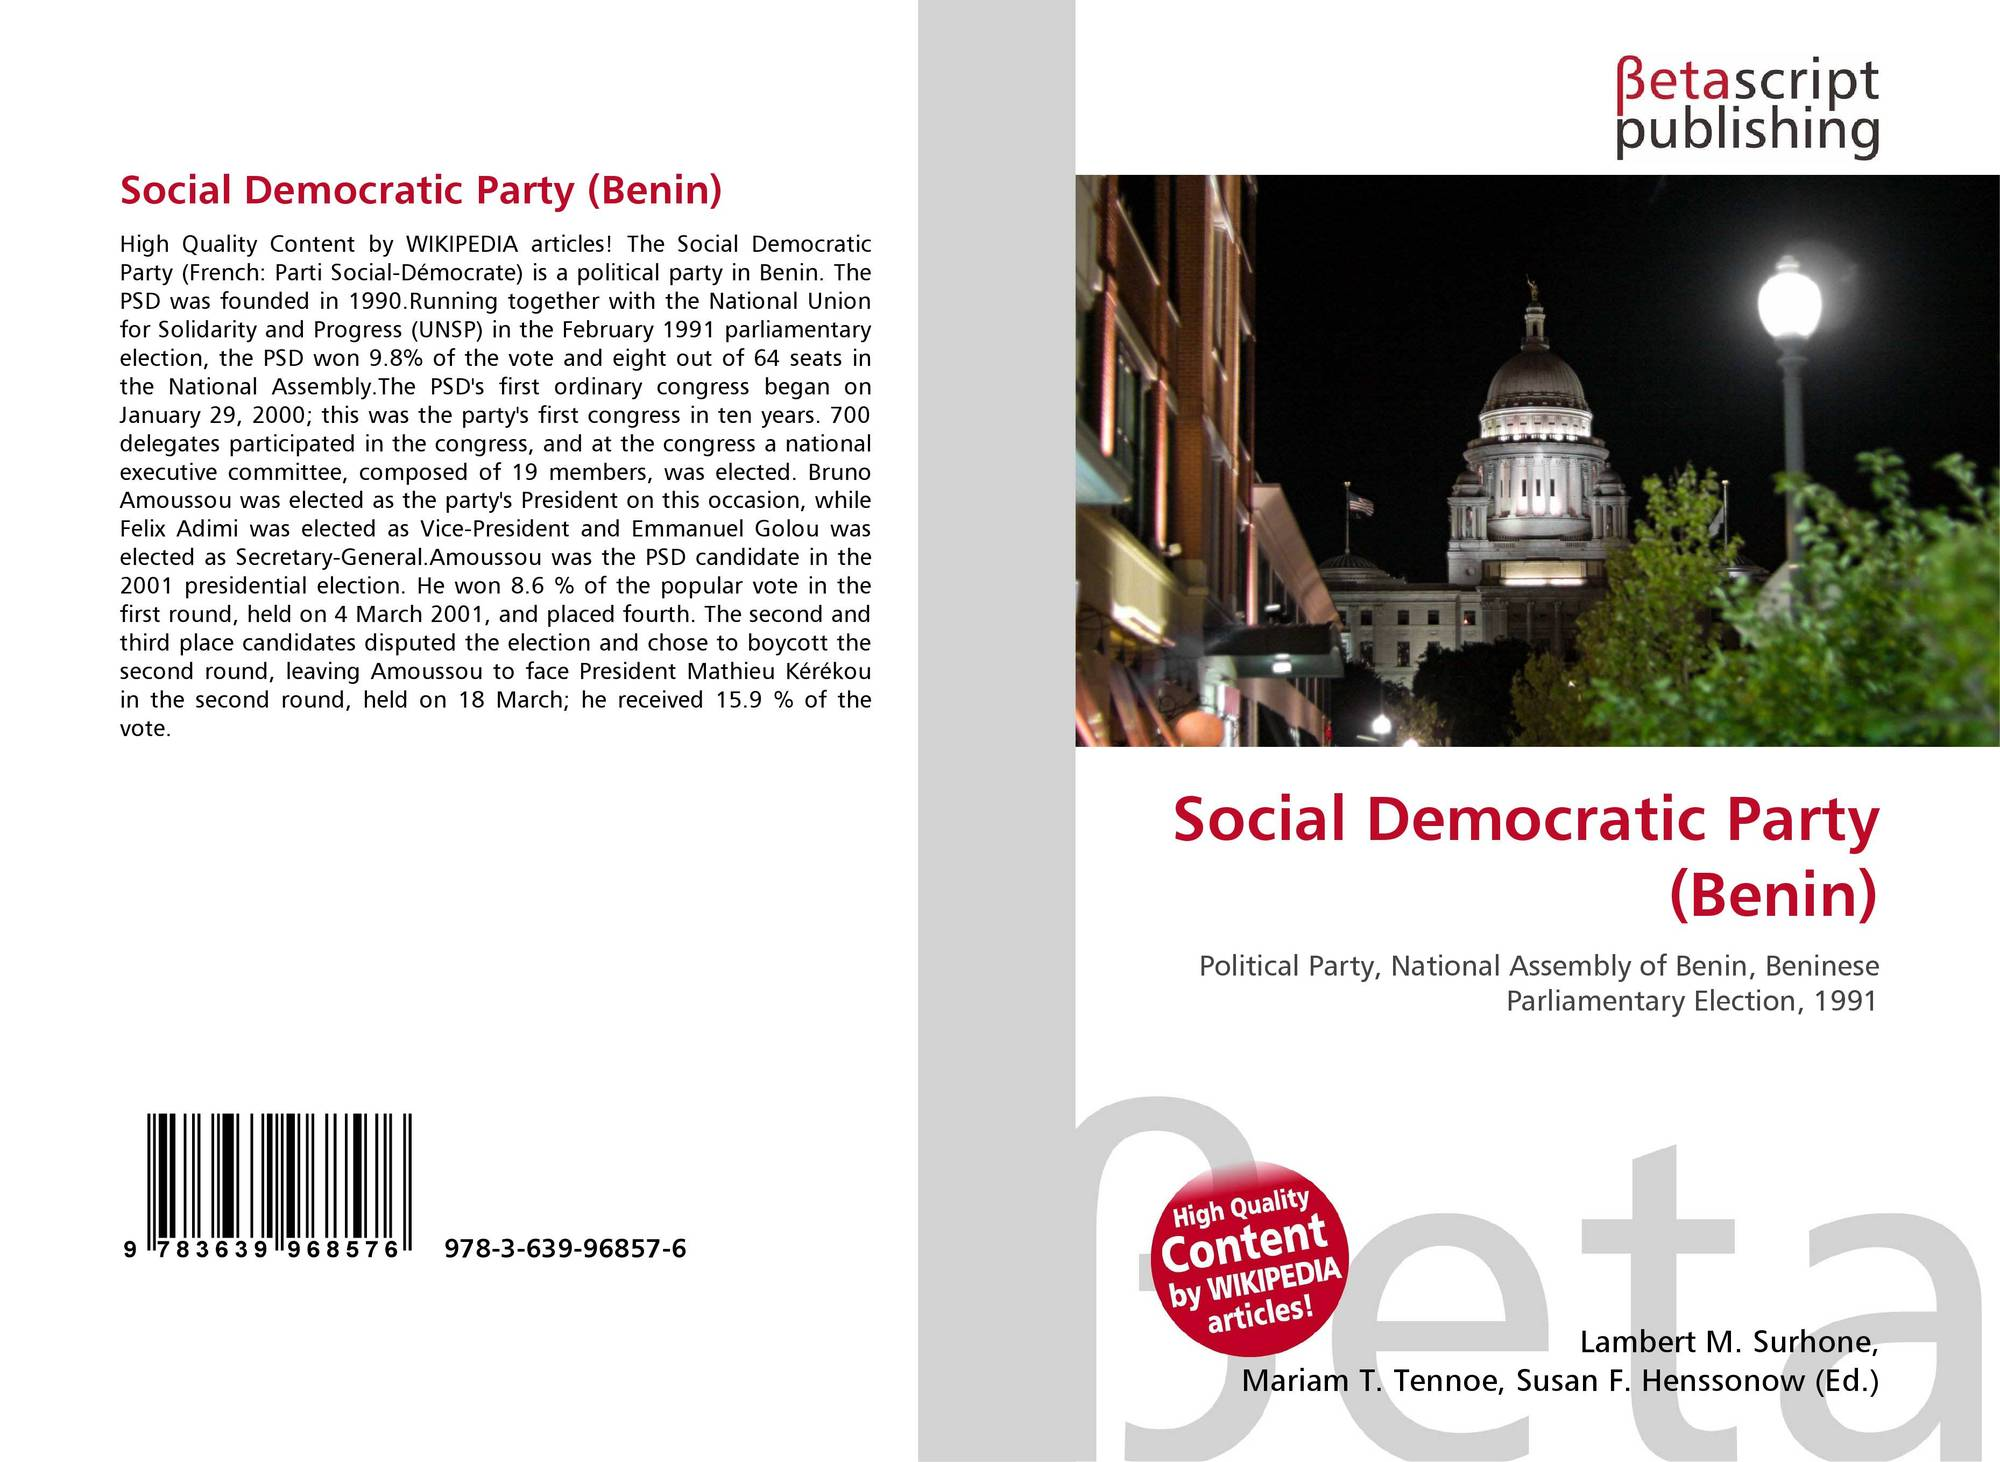 an analysis of democracy and the politics of displacement a chapter in a book by jean elshtain An analysis of democracy and the politics of displacement, a chapter in a book by jean elshtain an analysis of jean elshtain's chapter democracy and the politics.